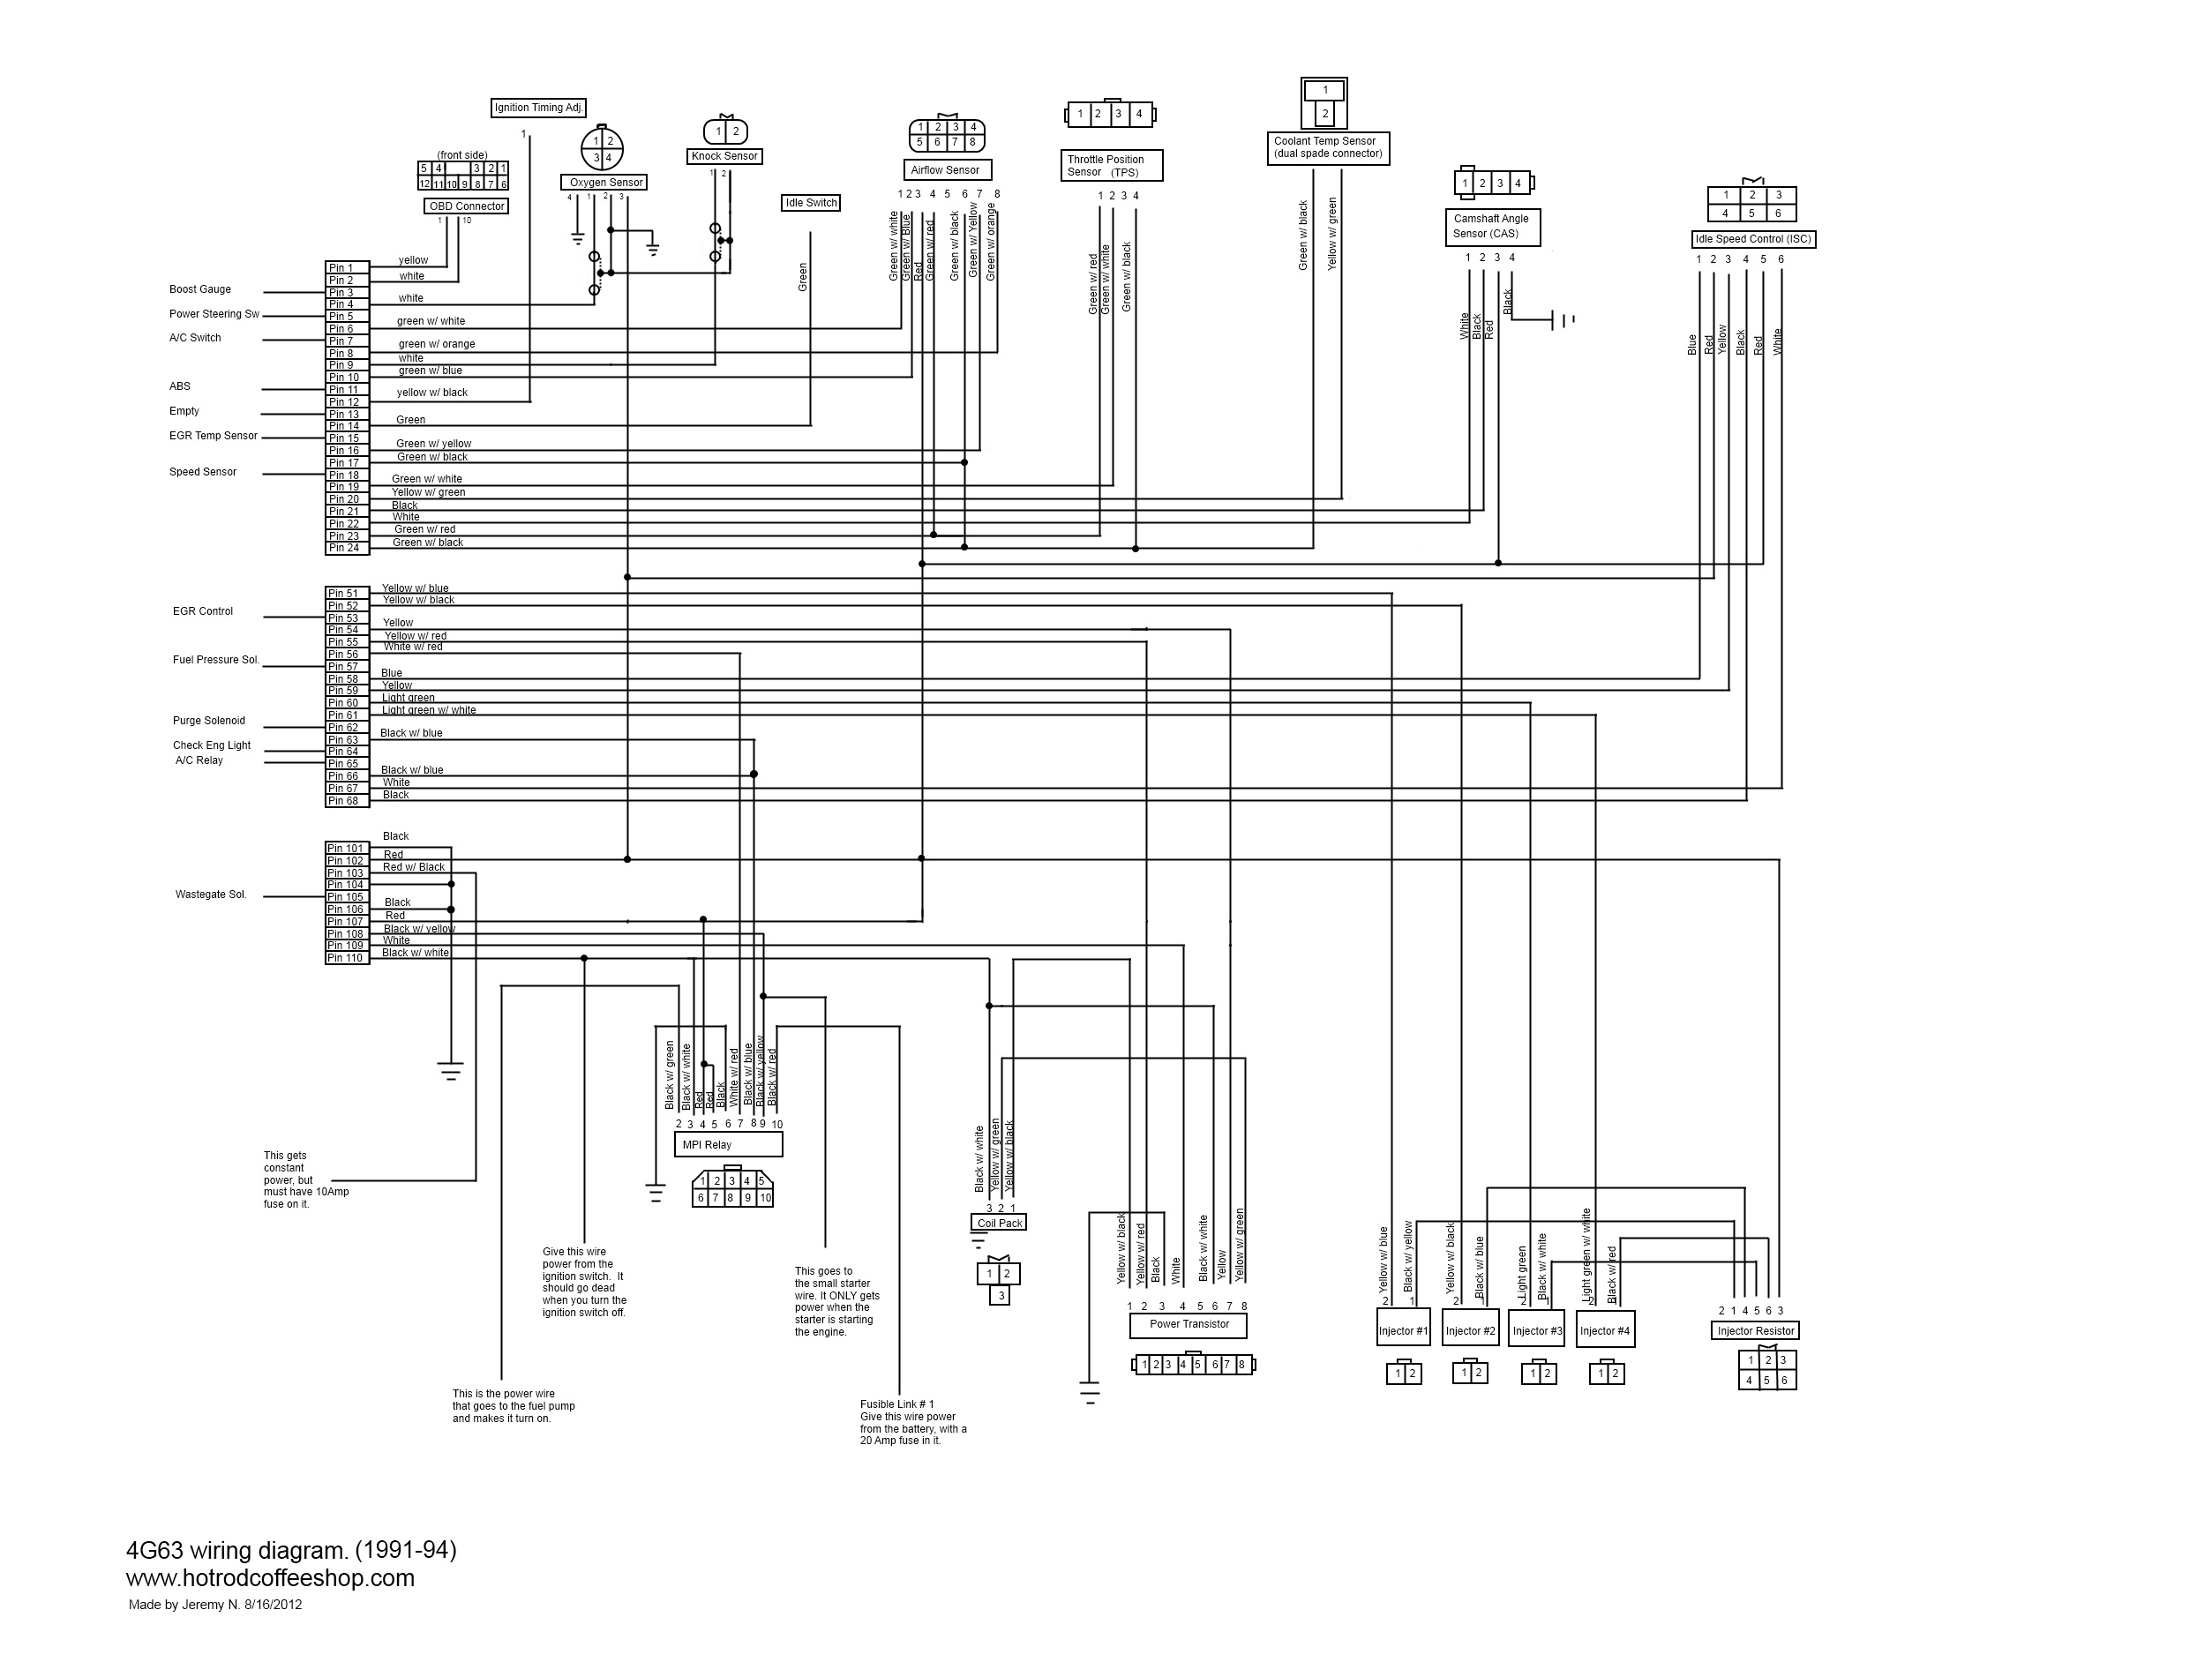 DIAGRAM] Mitsubishi Galant 2006 Wiring Diagram FULL Version HD Quality Wiring  Diagram - KIDNEYDIAGRAM.CRISEDUSIECLE.FRwiring diagram - crisedusiecle.fr